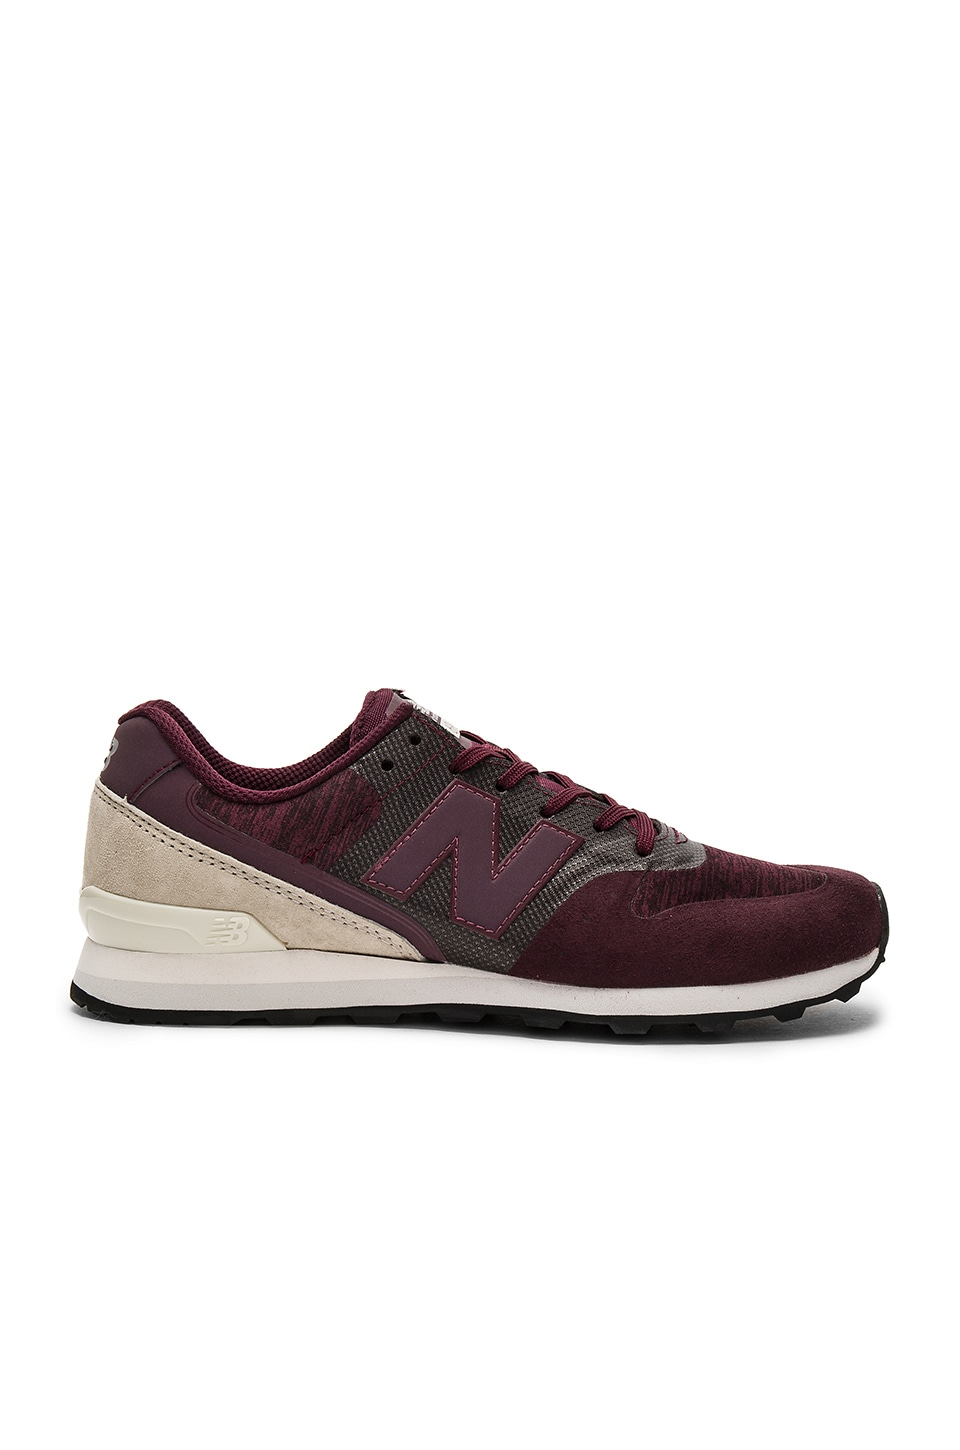 696 Re Engineered Sneaker by New Balance